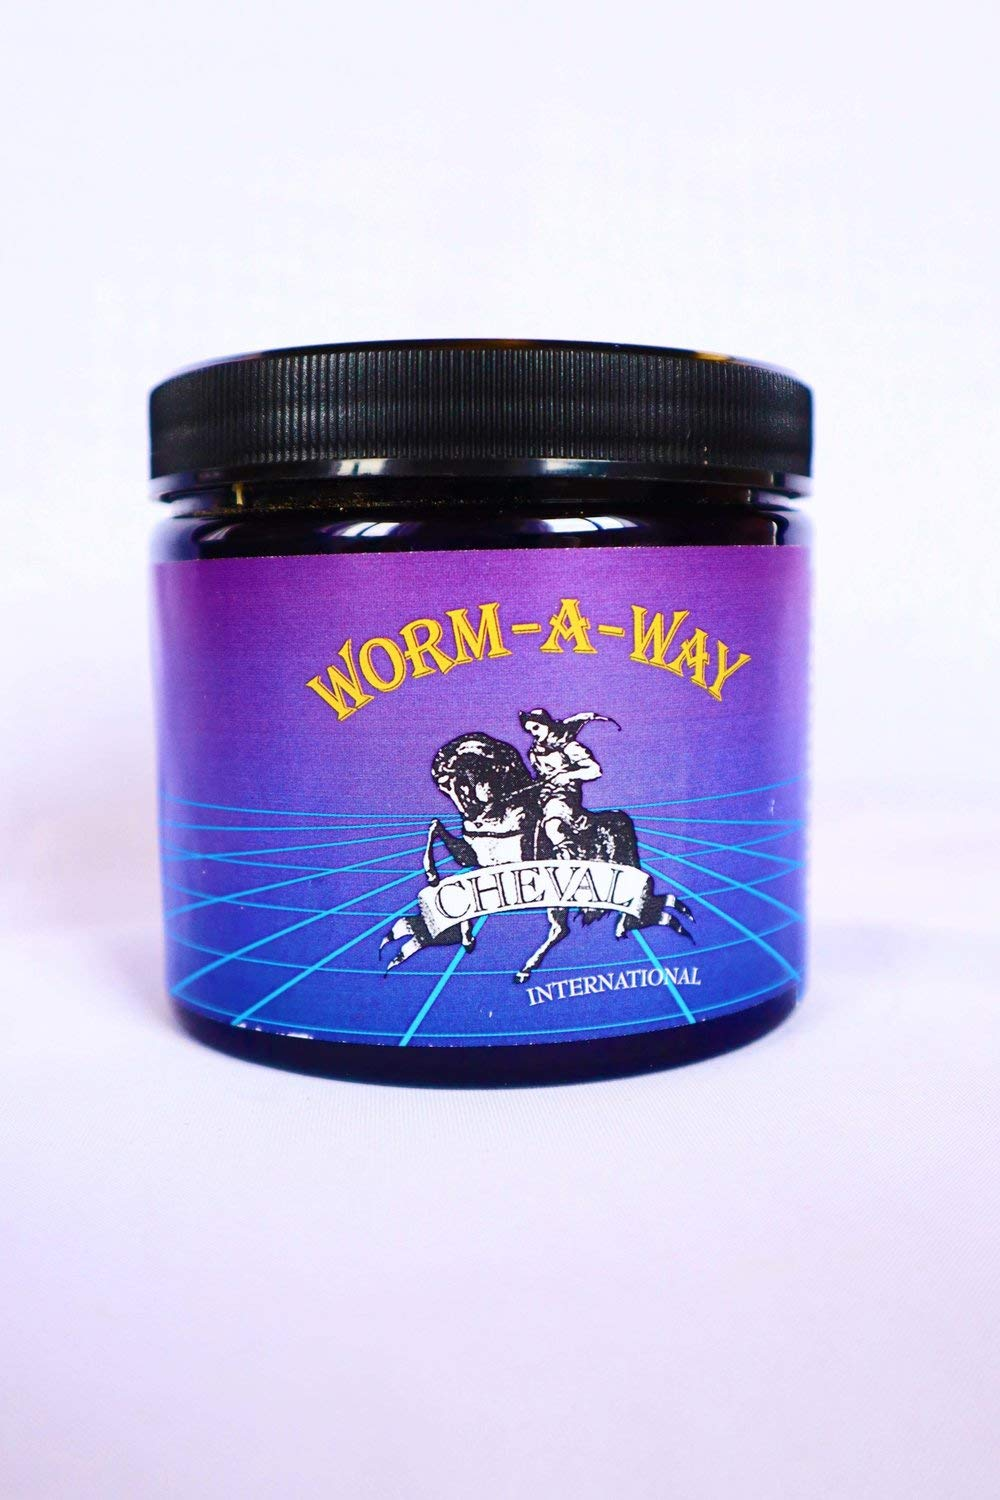 Horse Worm-A-Way Dewormer Naturally by Cheval.